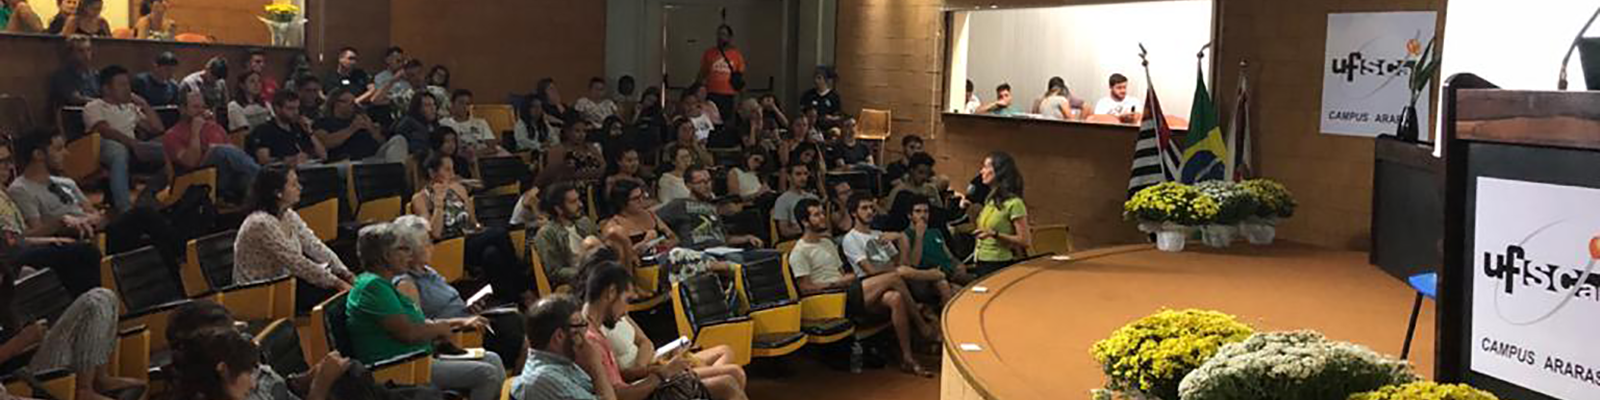 CCA-UFSCar's amphitheater with people sitting on orange coloured chairs with black seats, fixed on the side, stage with pulpit and flower pots. On the stage's edge, Brasil's, São Paulo's and Araras' (municipality) flags. On the ceiling, spotlights turned to the stage.